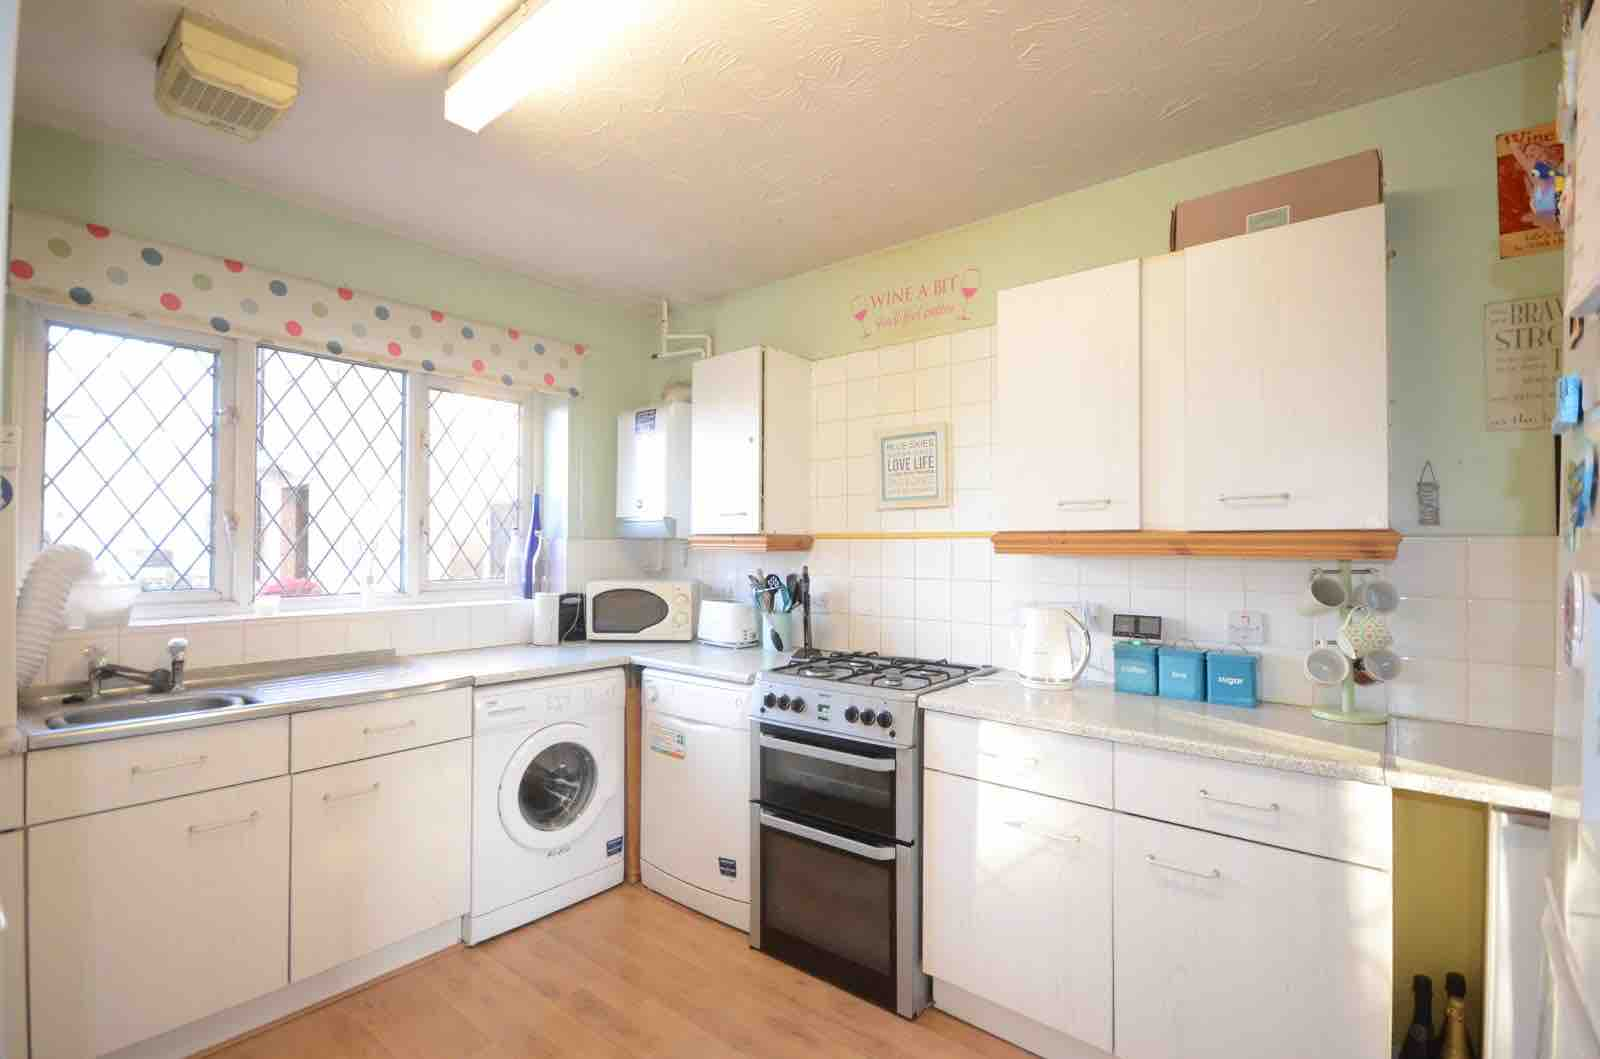 1 room in Cippenham, Berkshire, SL1 5UP RoomsLocal image